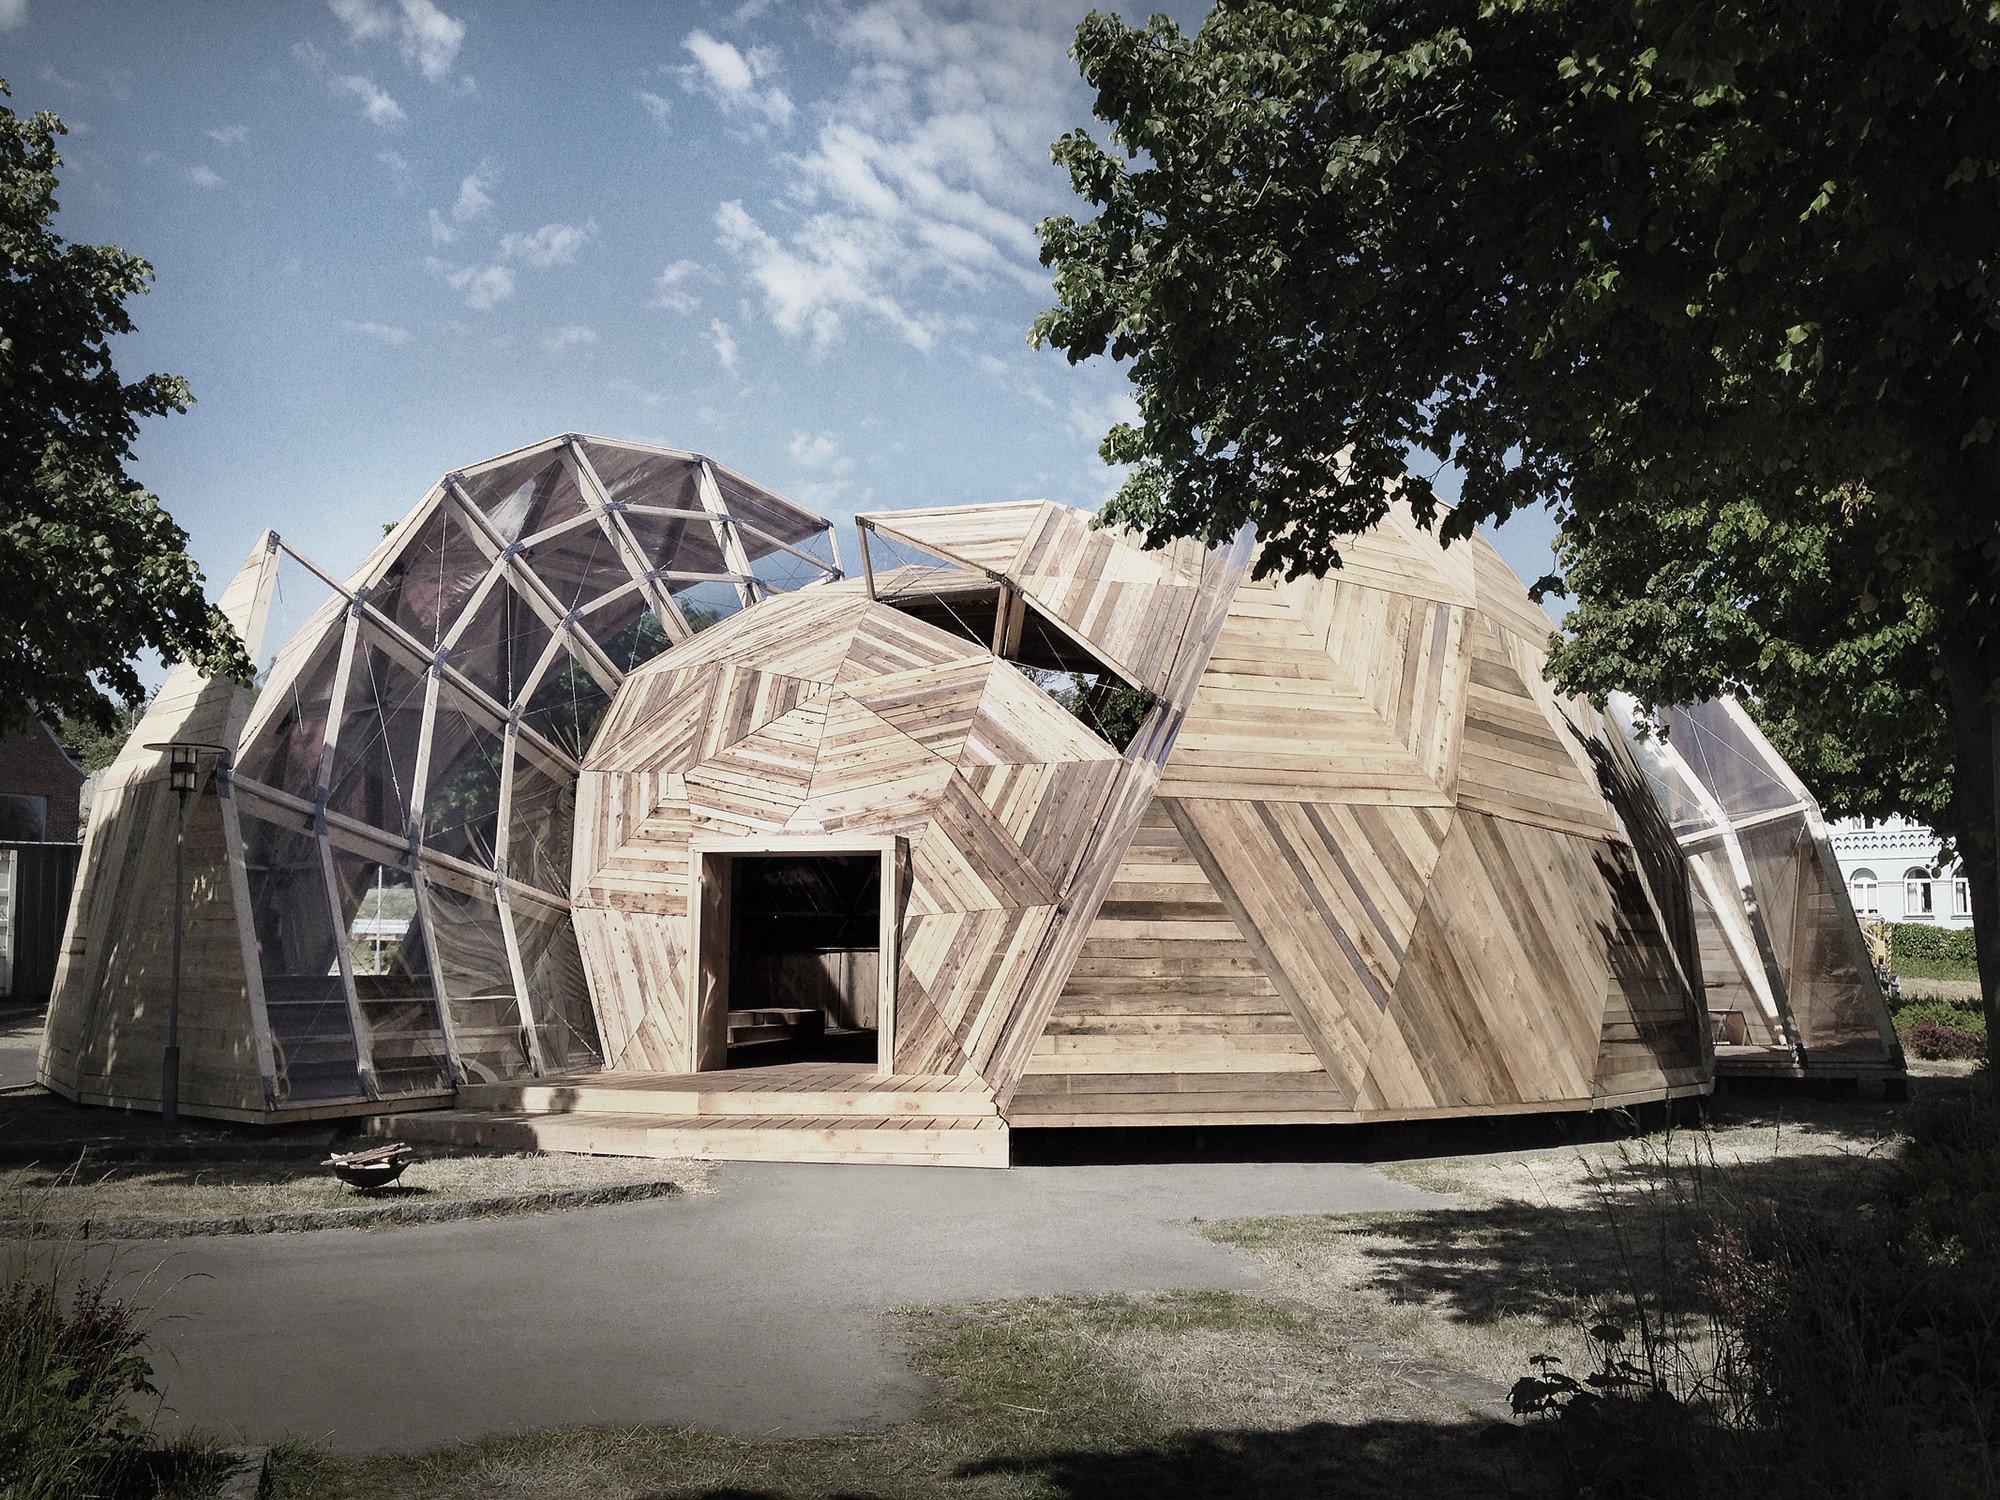 Tejlgaard & Jepsen Transform a Temporary Geodesic Dome Into a Permanent Structure, Courtesy of Tejlgaard & Jepsen